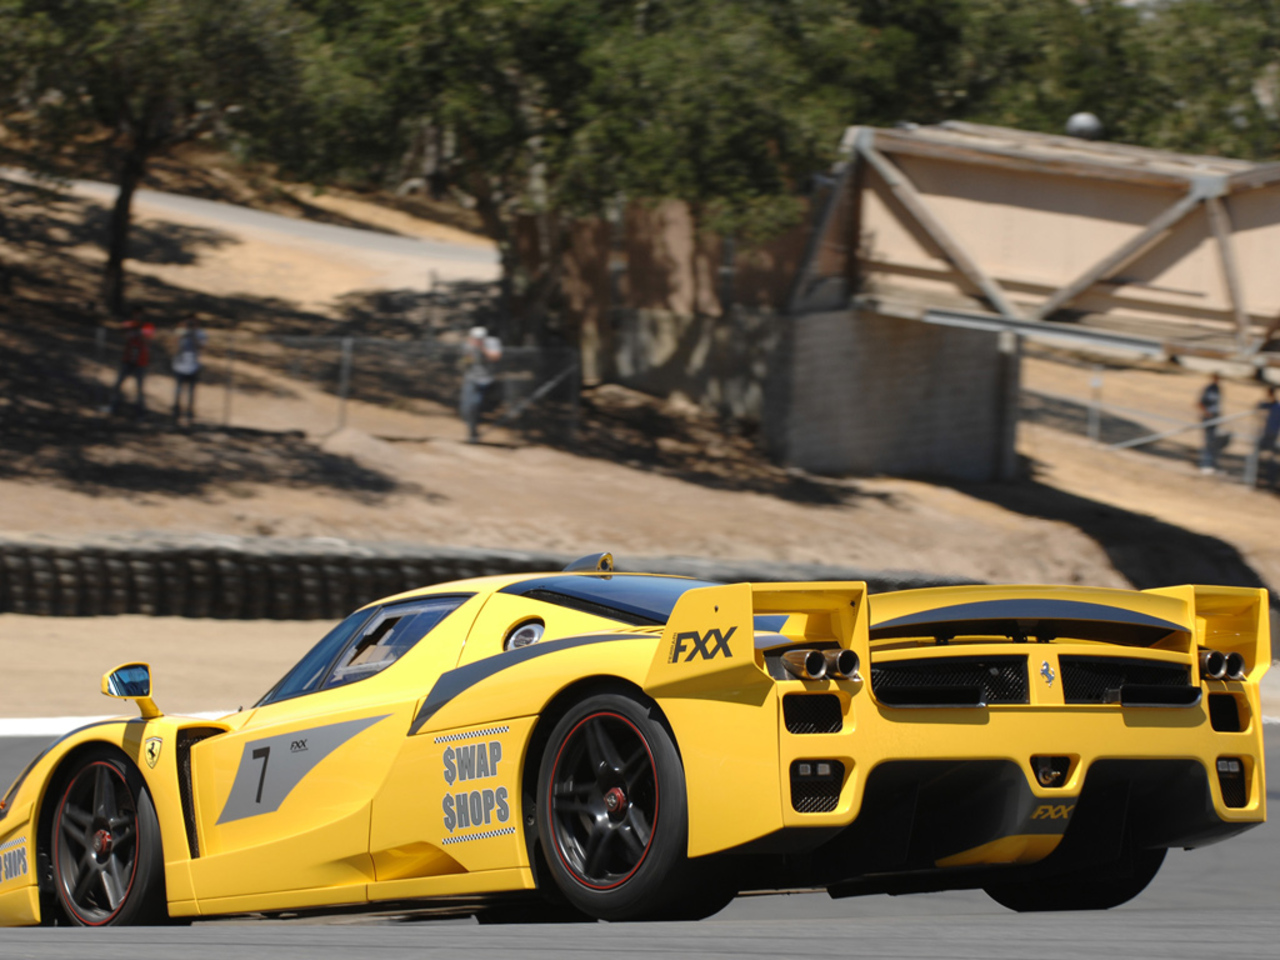 FXX Prototype at Laguna Seca circuit